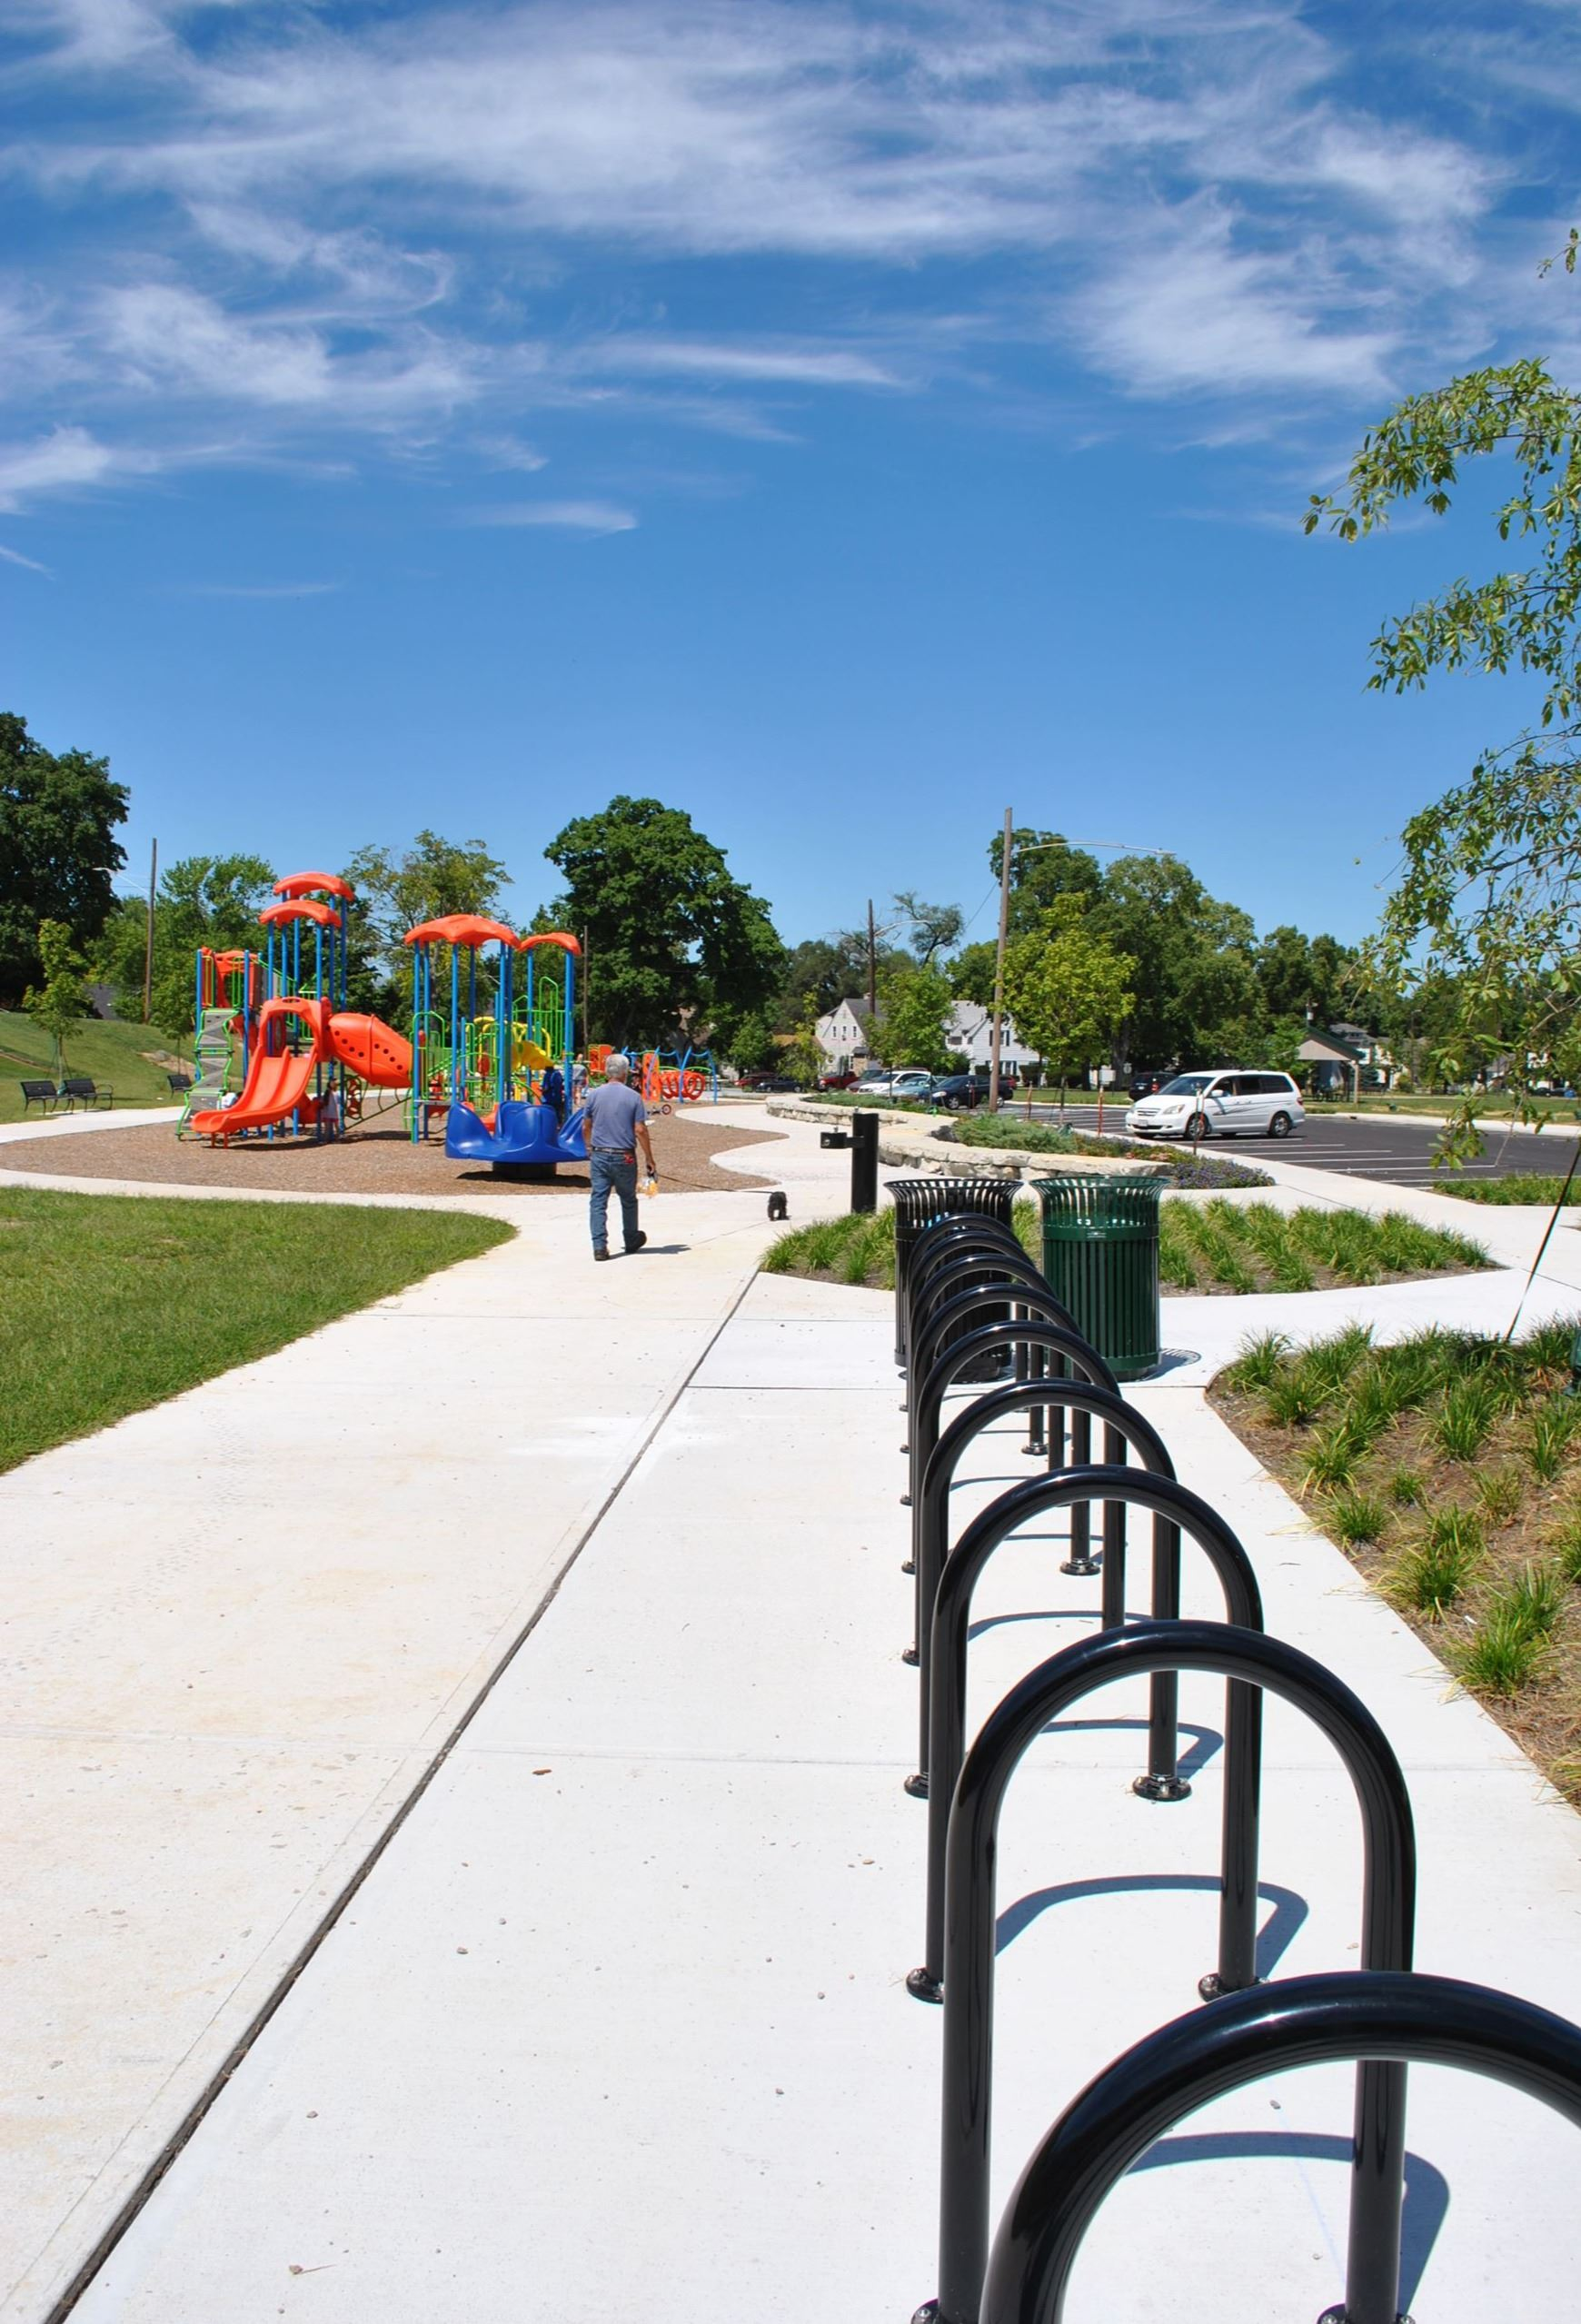 Sunset Park Bike Racks and Playground, Middletown